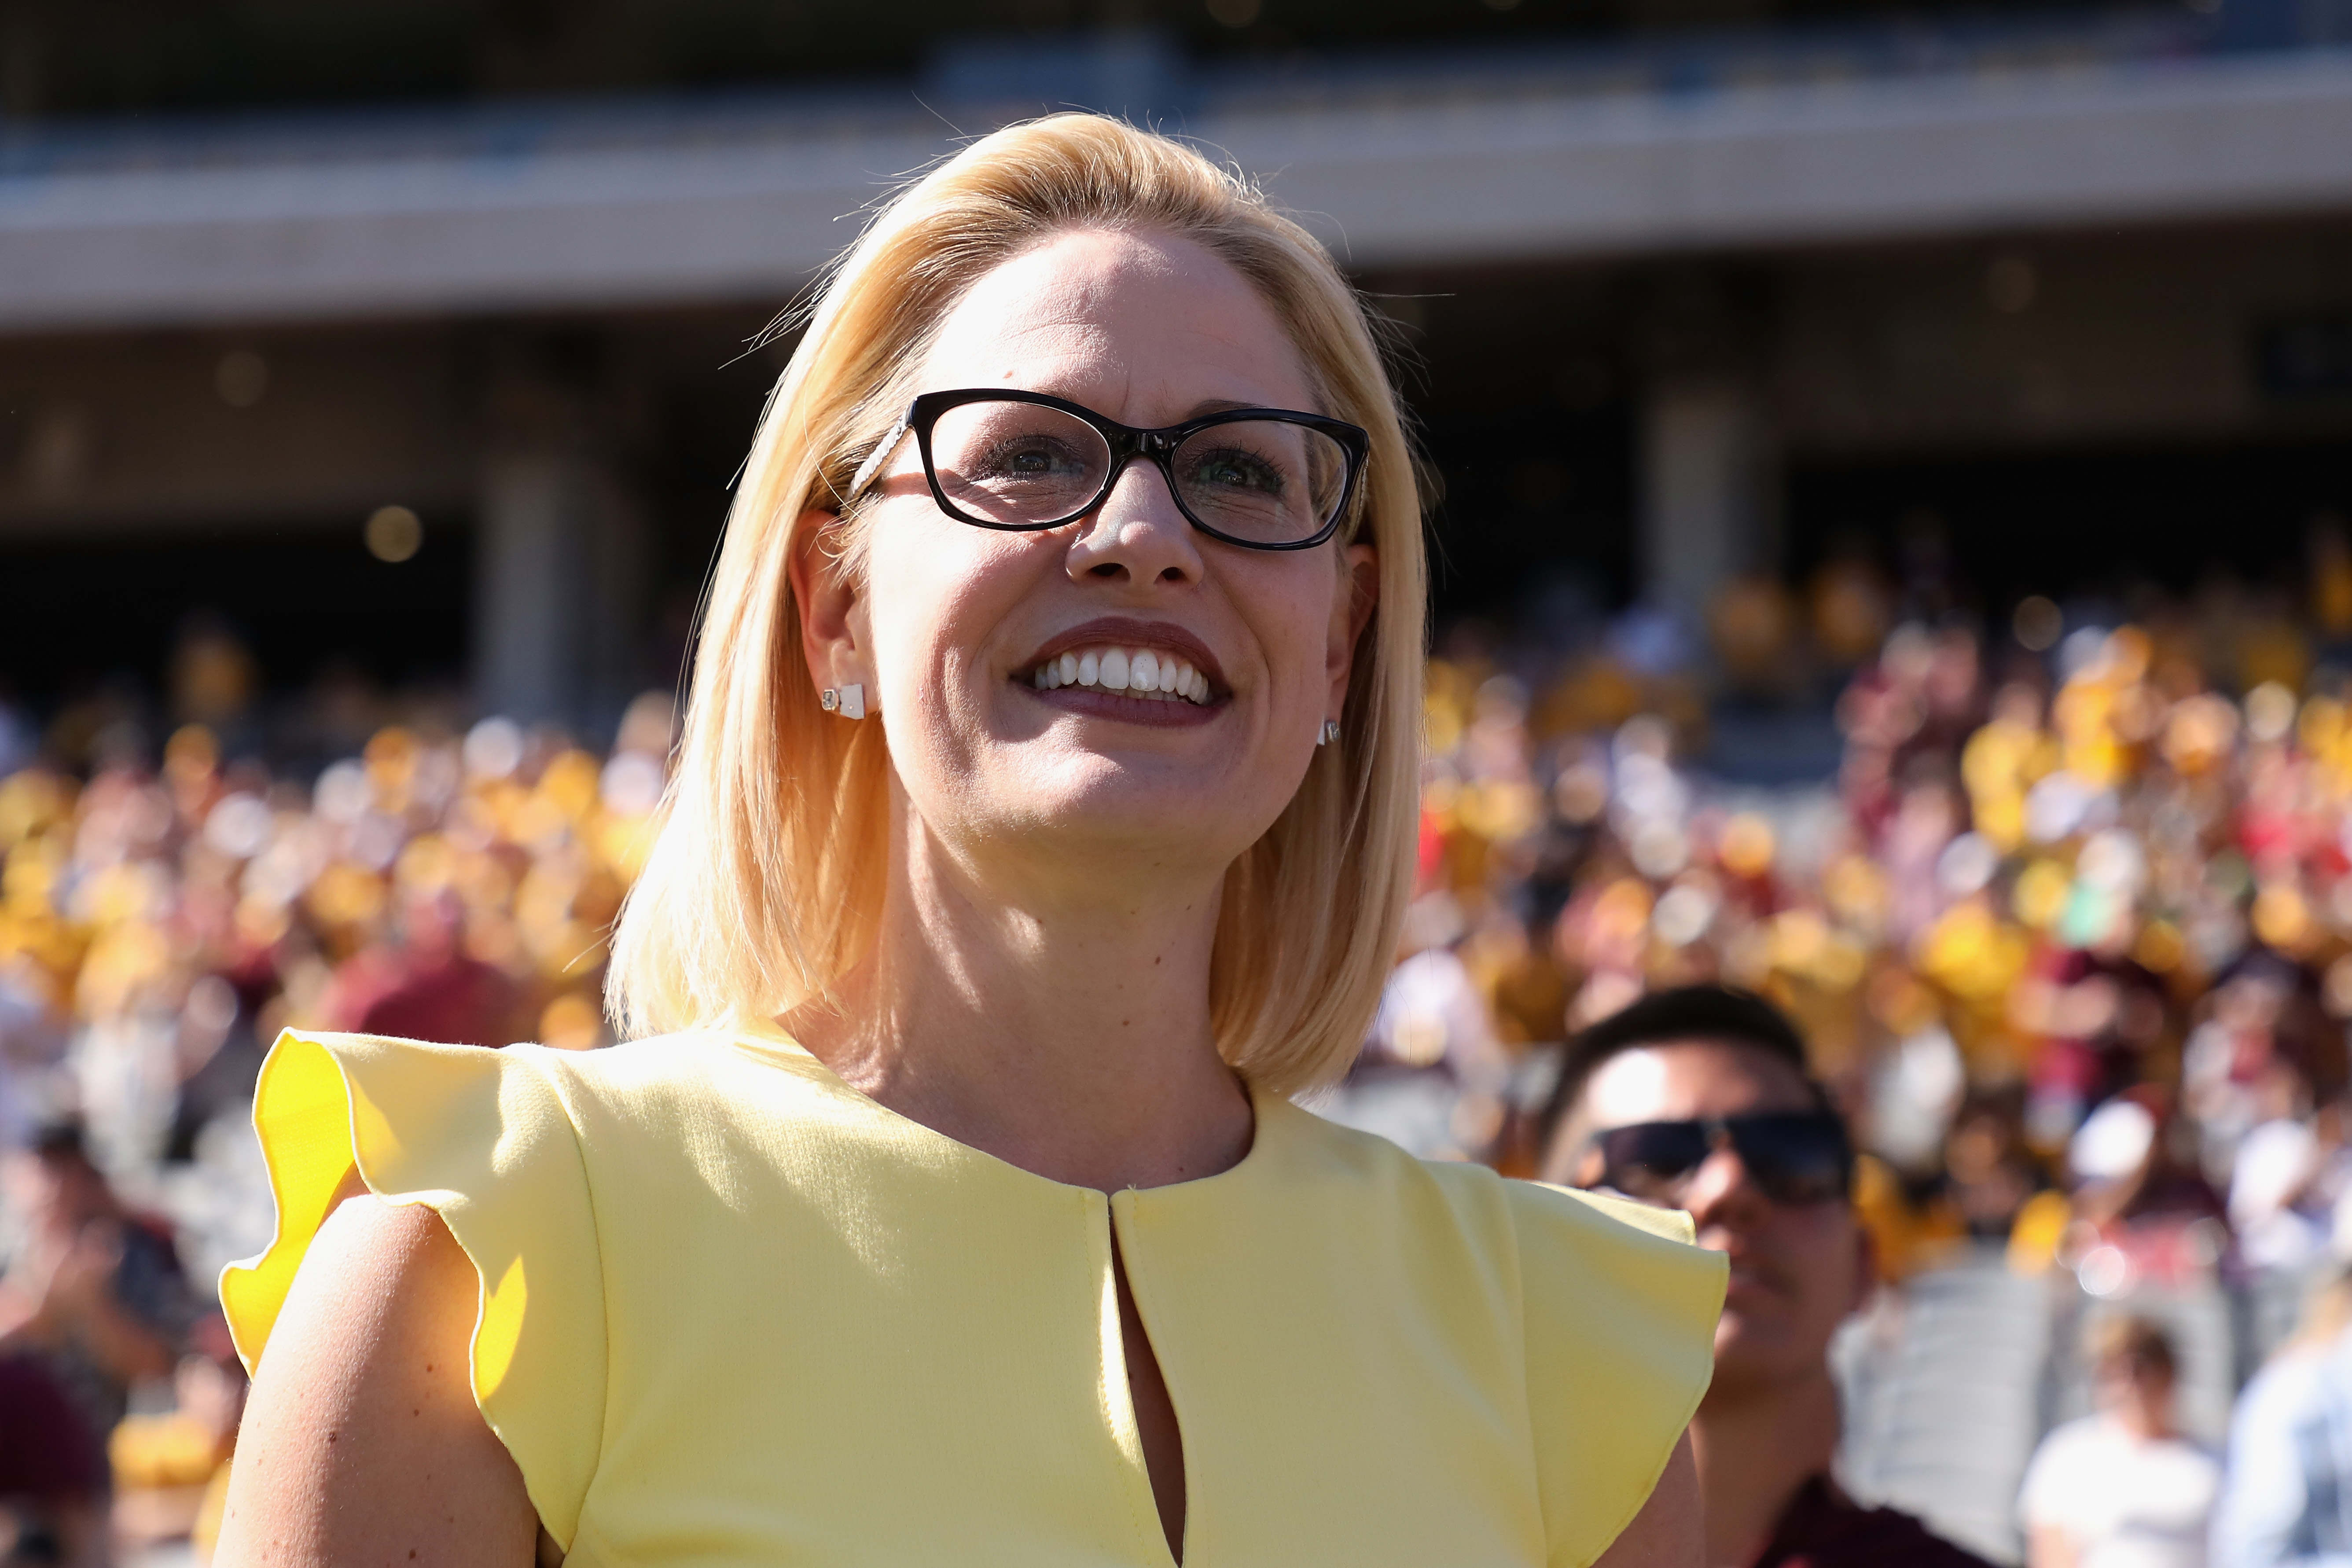 Democrat Senate candidate Kyrsten Sinema participates in the pregame coin toss before the game between the Utah Utes and the Arizona State Sun Devils on Nov. 3, 2018 in Tempe, Arizona.